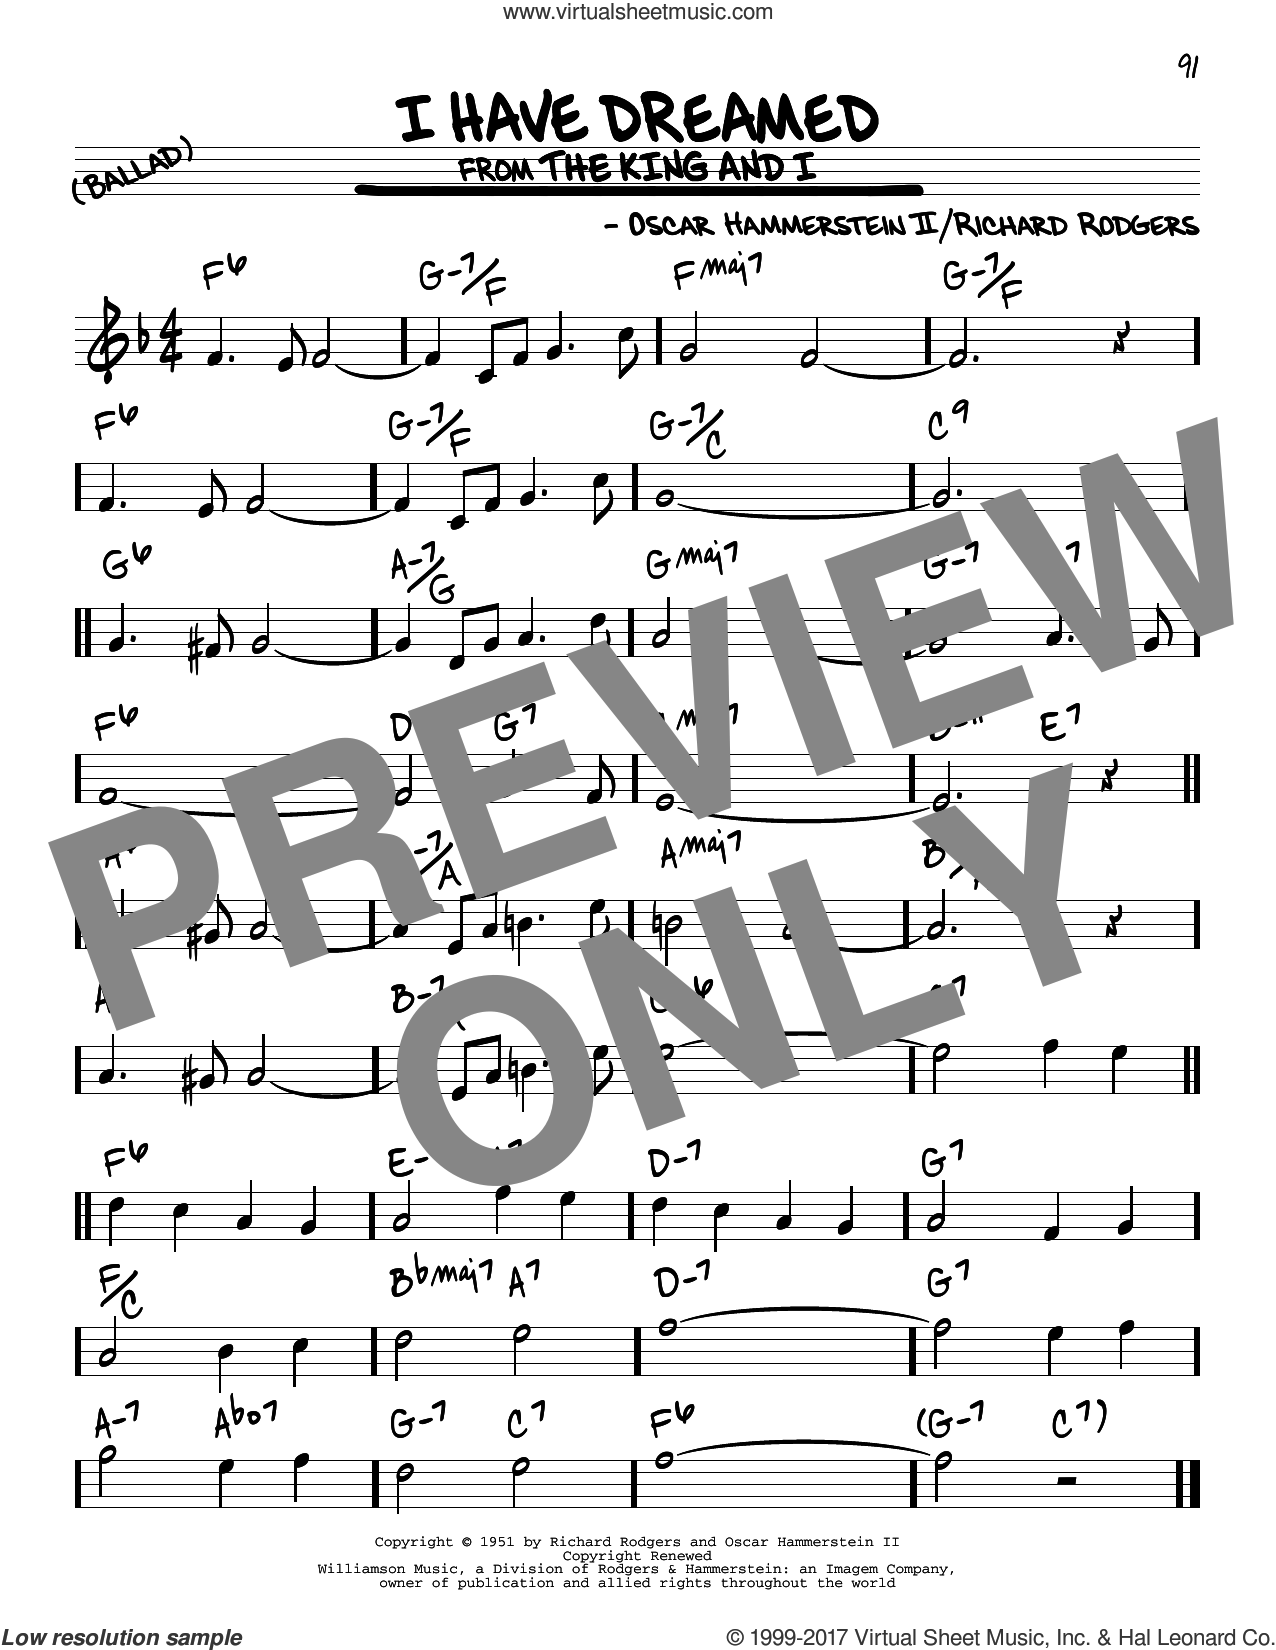 I Have Dreamed sheet music for voice and other instruments (real book) by Rodgers & Hammerstein, Oscar II Hammerstein and Richard Rodgers, intermediate skill level